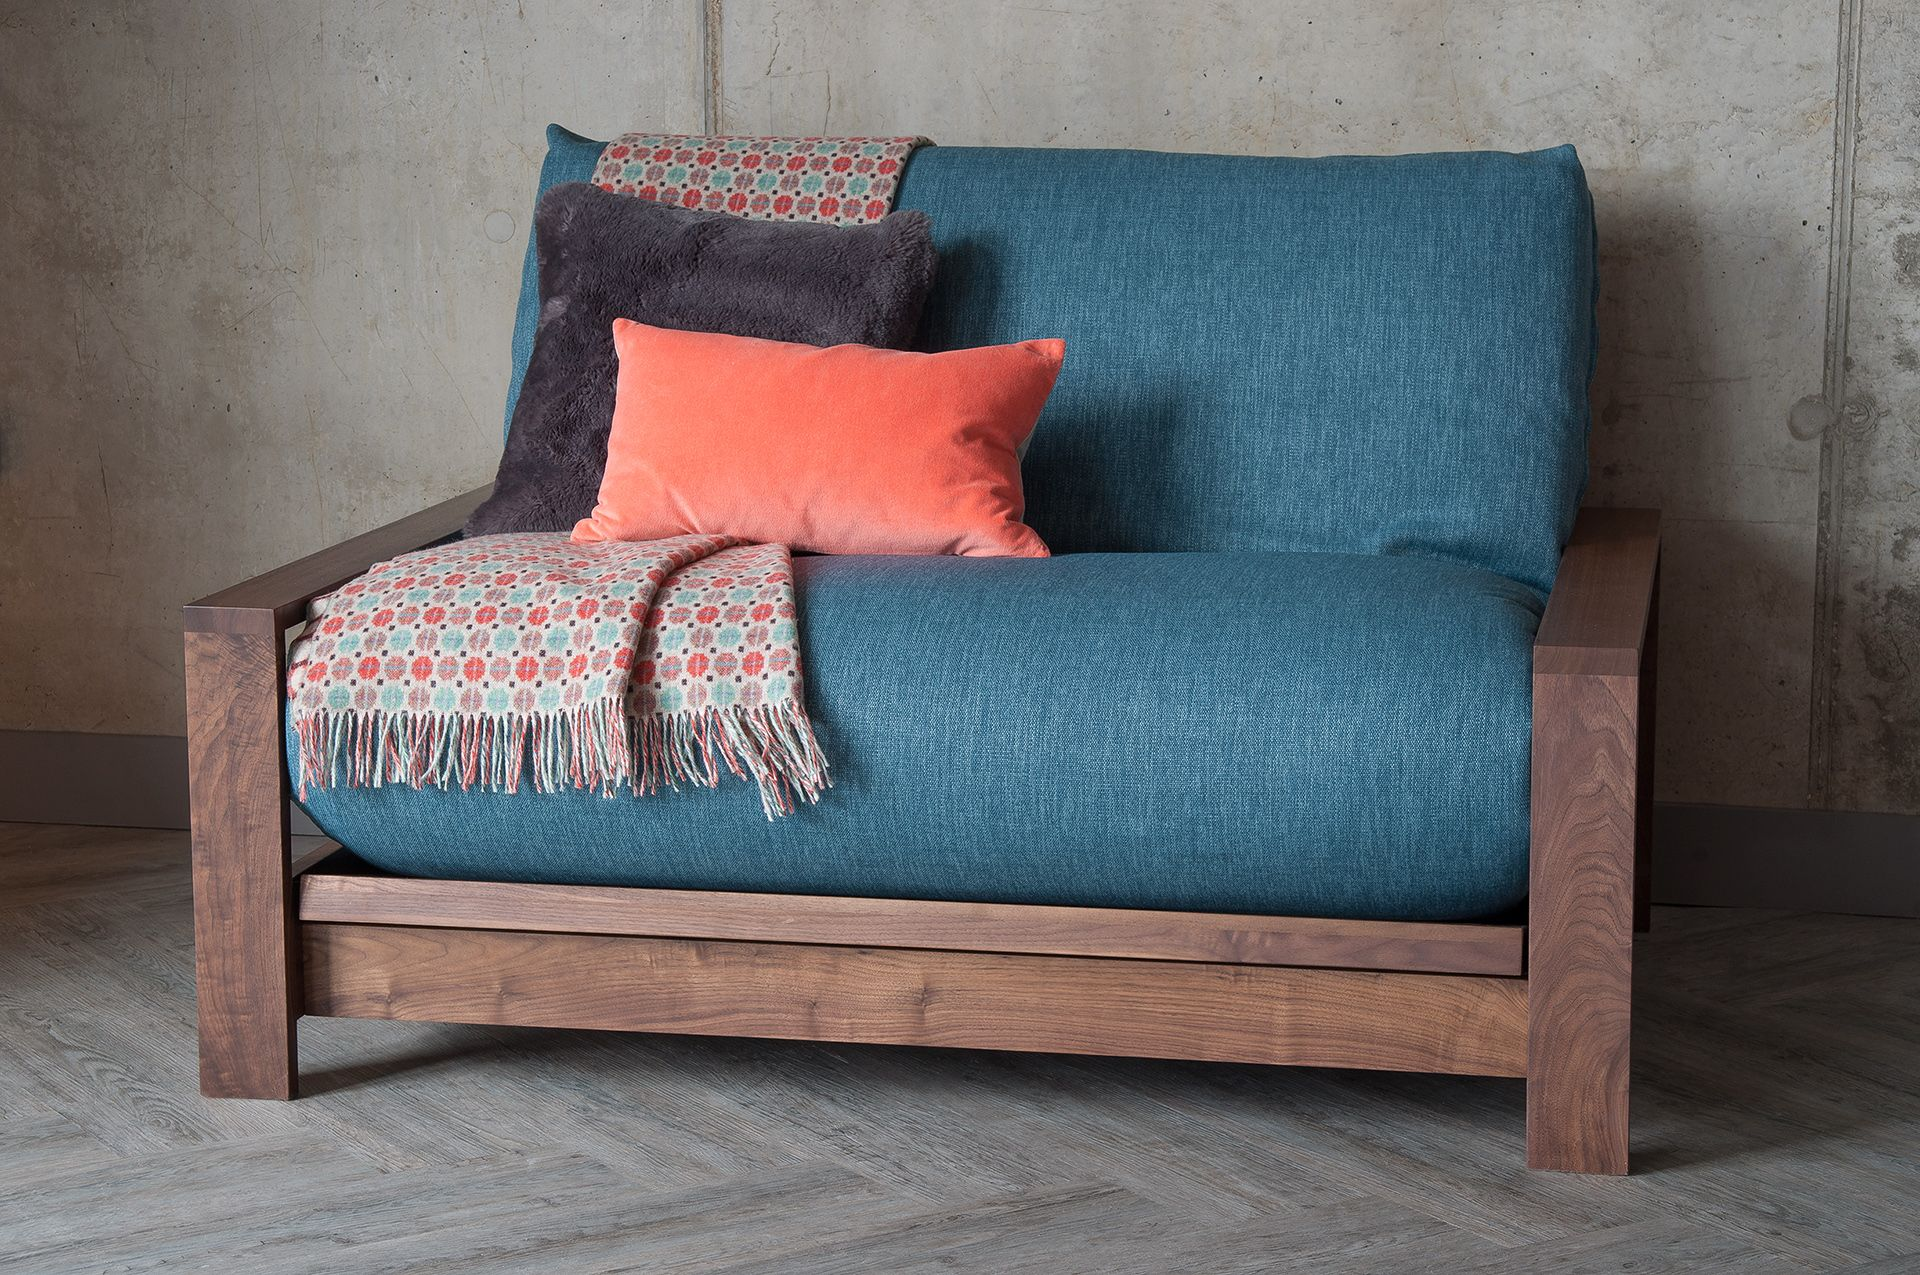 Bed And Sofa Factory Darlington Company Gr The Stylish Panama Solid Wood Futon Includes A 7